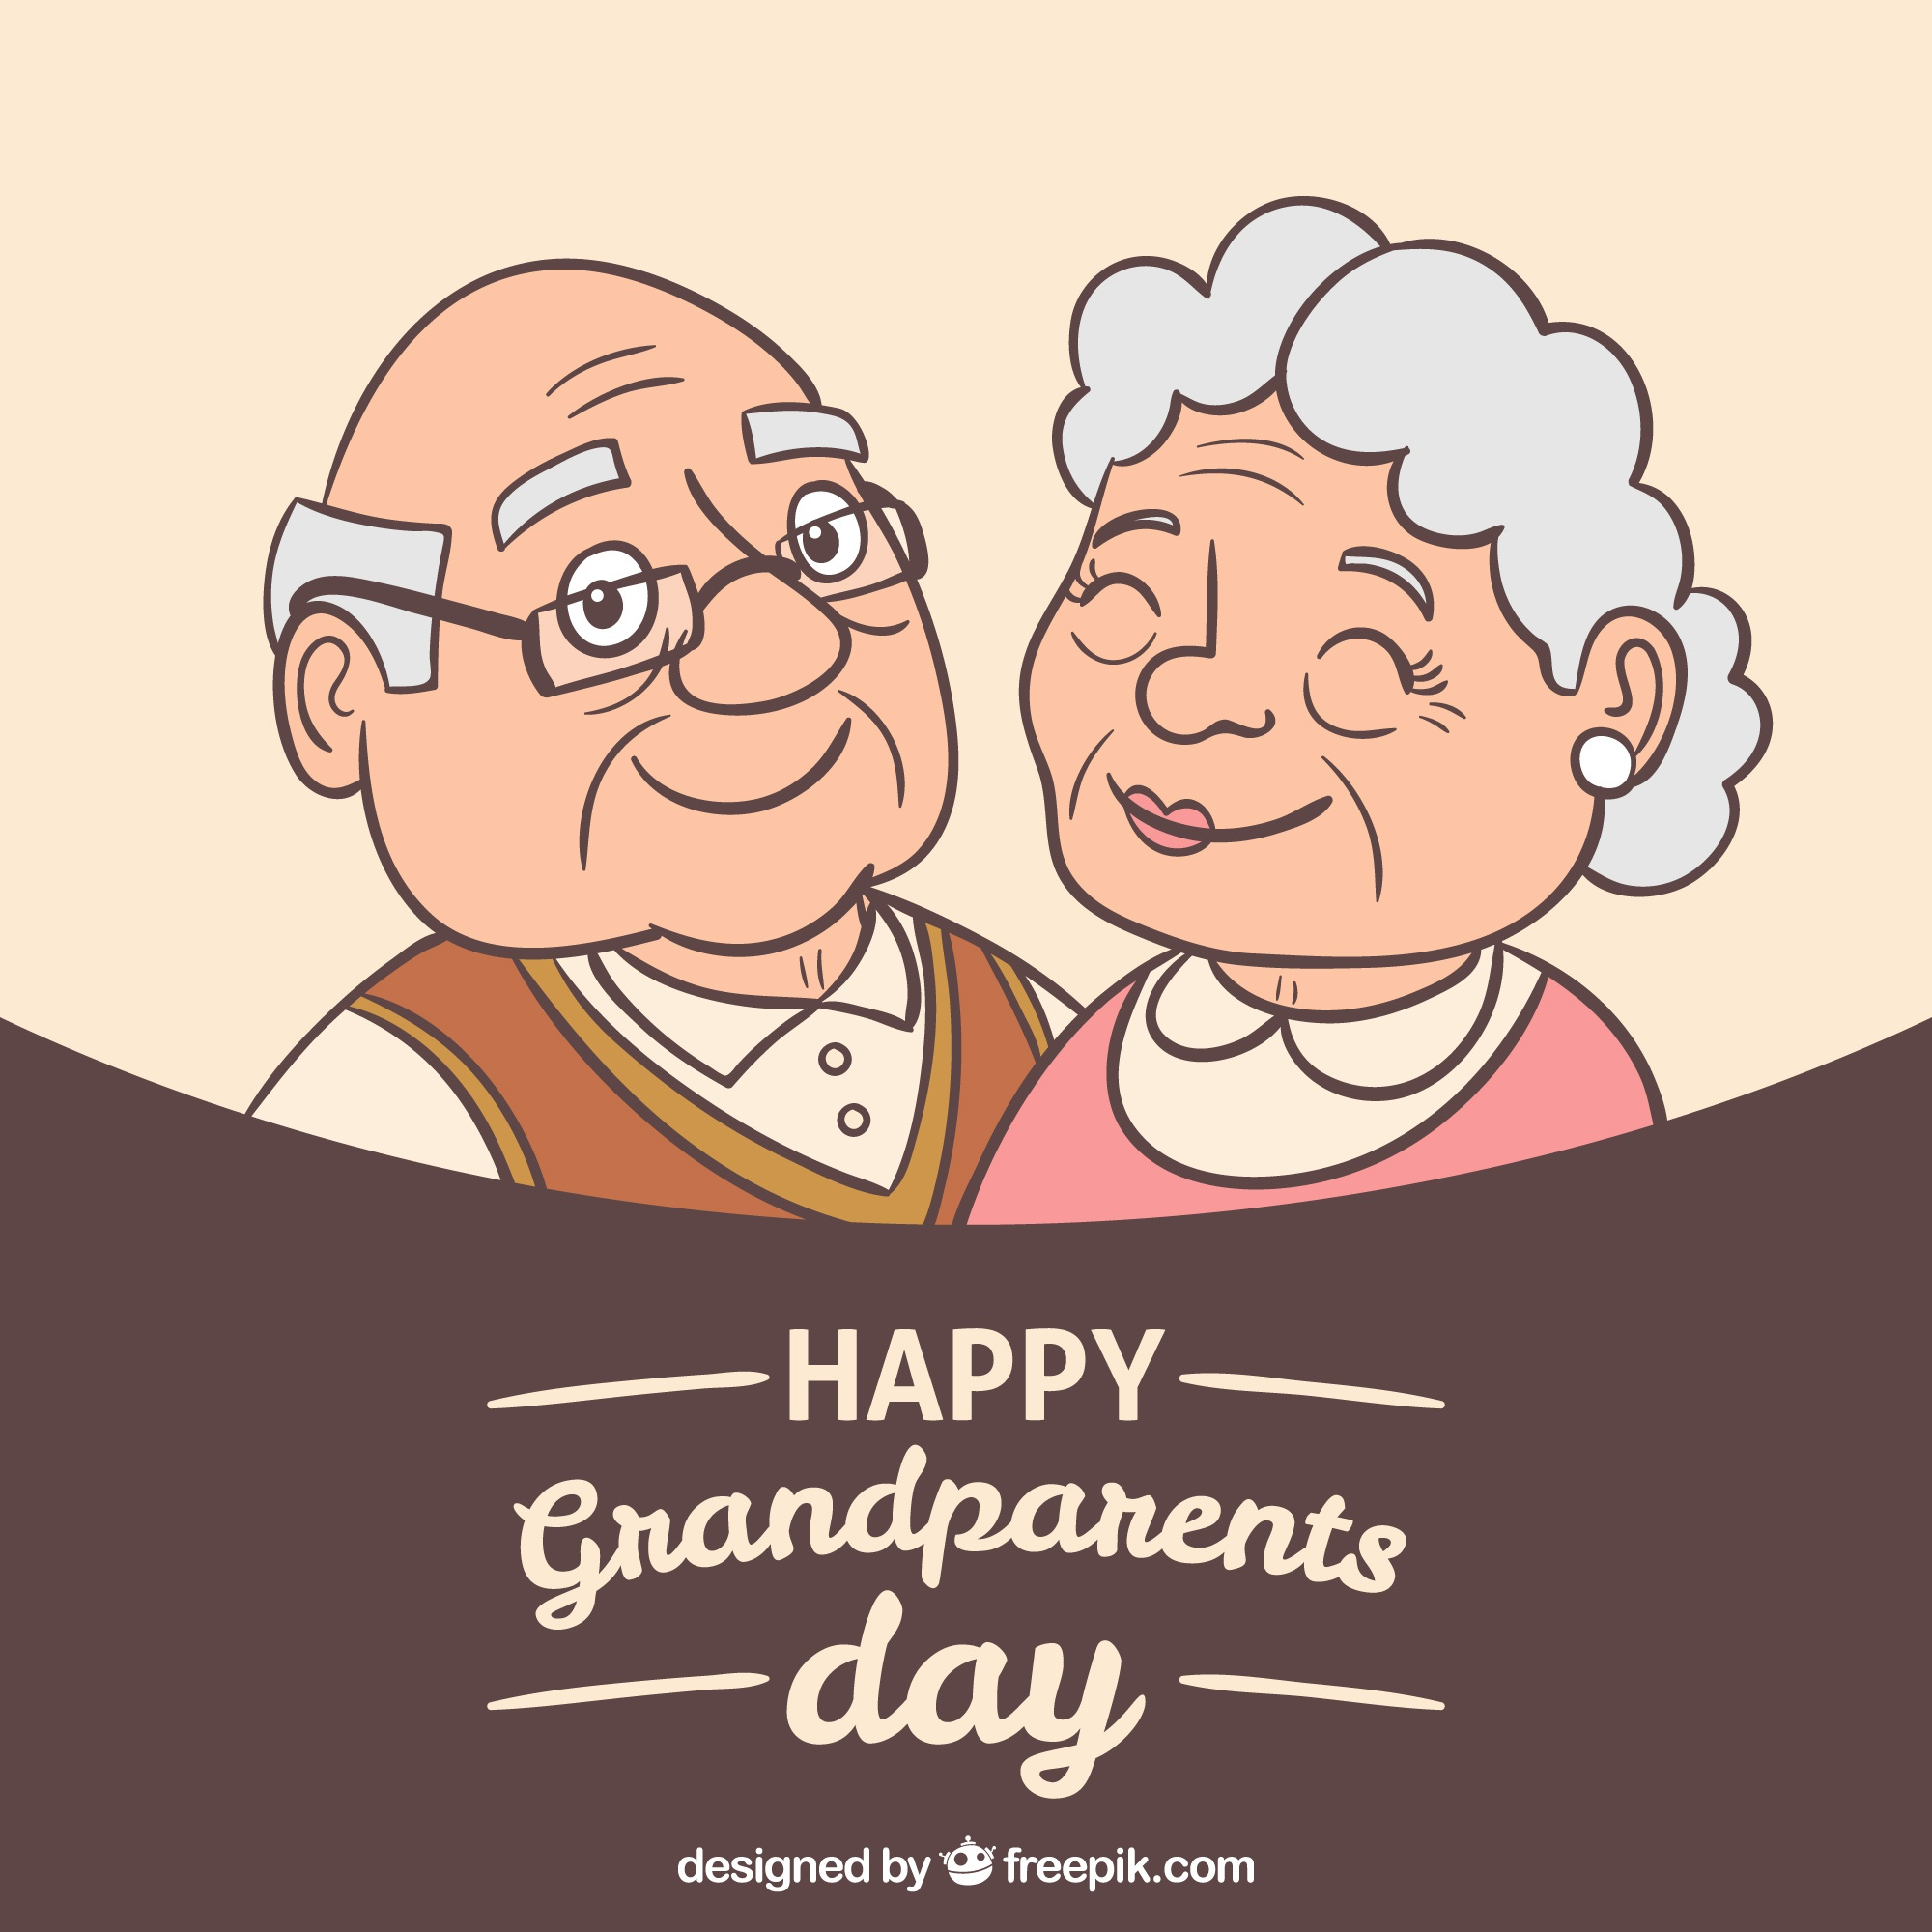 Background with illustration of happy grandparents